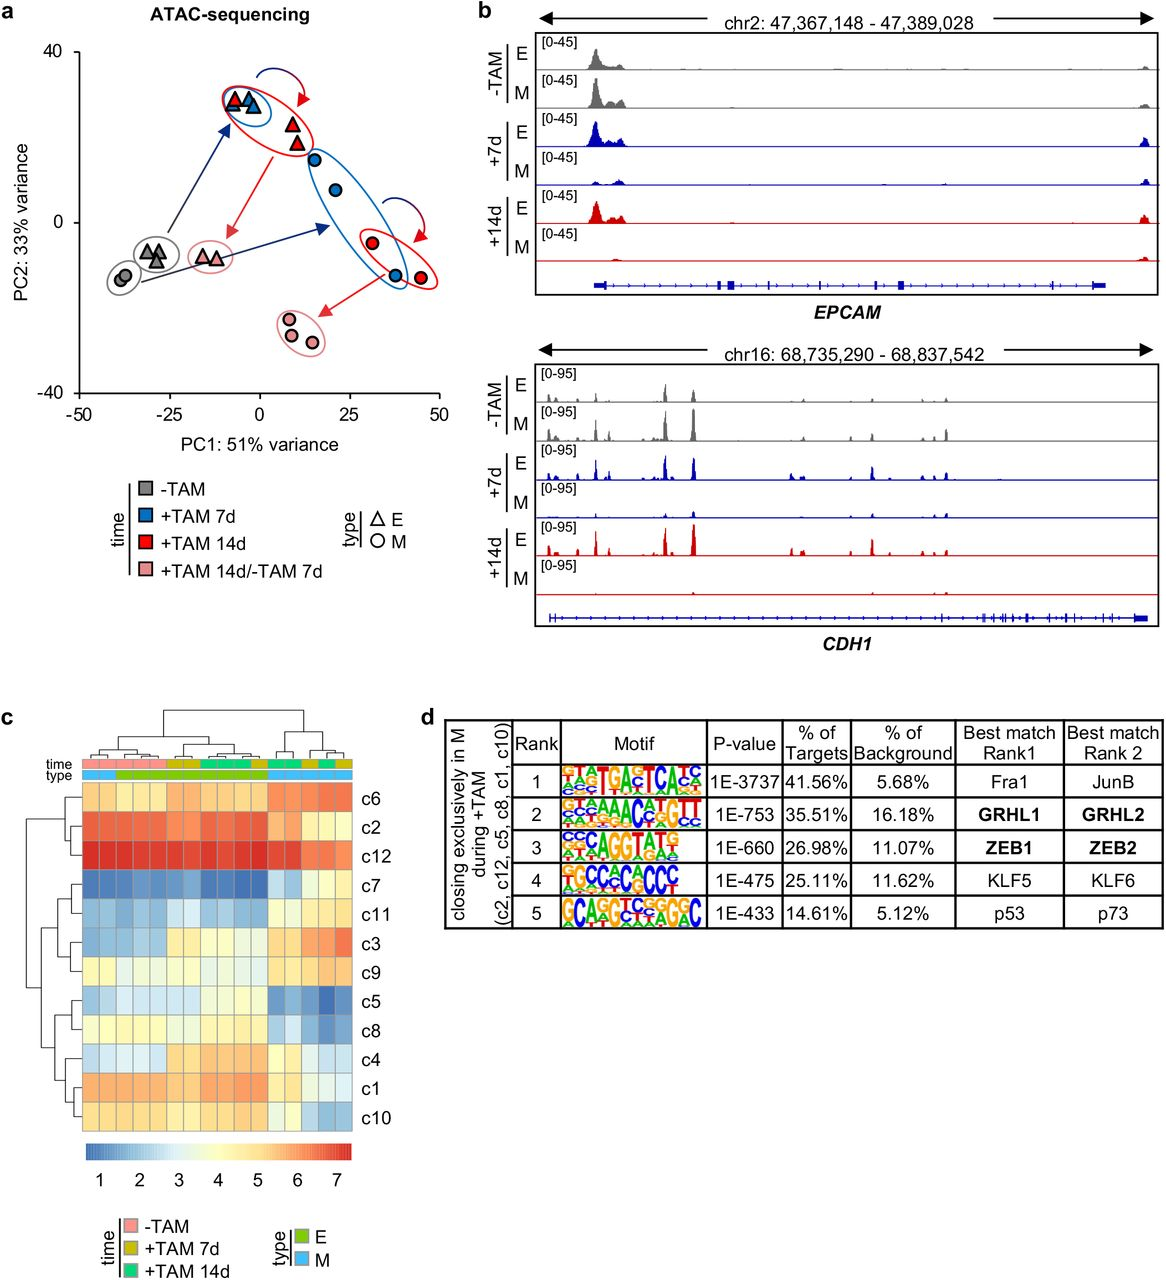 EMT-induction causes genome-wide chromatin and transcriptional changes a , Principal component (PC) analysis of ATAC-sequencing data of E-SCCs (△) and M-SCCs ( ◯ ), untreated (-TAM), treated with Tamoxifen for 7 days (+TAM 7d), treated with Tamoxifen for 14 days (+TAM 14d), or treated with Tamoxifen for 14 days followed by Tamoxifen withdrawal for 7 days (+TAM 14d/-TAM 7d). Each data point represents one SCC at the indicated time point. b , Genome browser high resolution screenshot of ATAC-sequencing data of EPCAM and CDH1 of one representative E-SCC (E) and one representative M-SCC (M), untreated (-TAM), treated with Tamoxifen for 7 days (+7d), or treated with Tamoxifen for 14 days (+14d). c , Heatmap of chromatin accessibility of 12 clusters of ATAC-sequencing peaks of E-SCCs and M-SCCs treated as described in b. d , Top 5 hits of Homer de novo transcription factor motif analysis of grouped clusters closing exclusively in M-SCCs (M) during Tamoxifen treatment (+TAM).